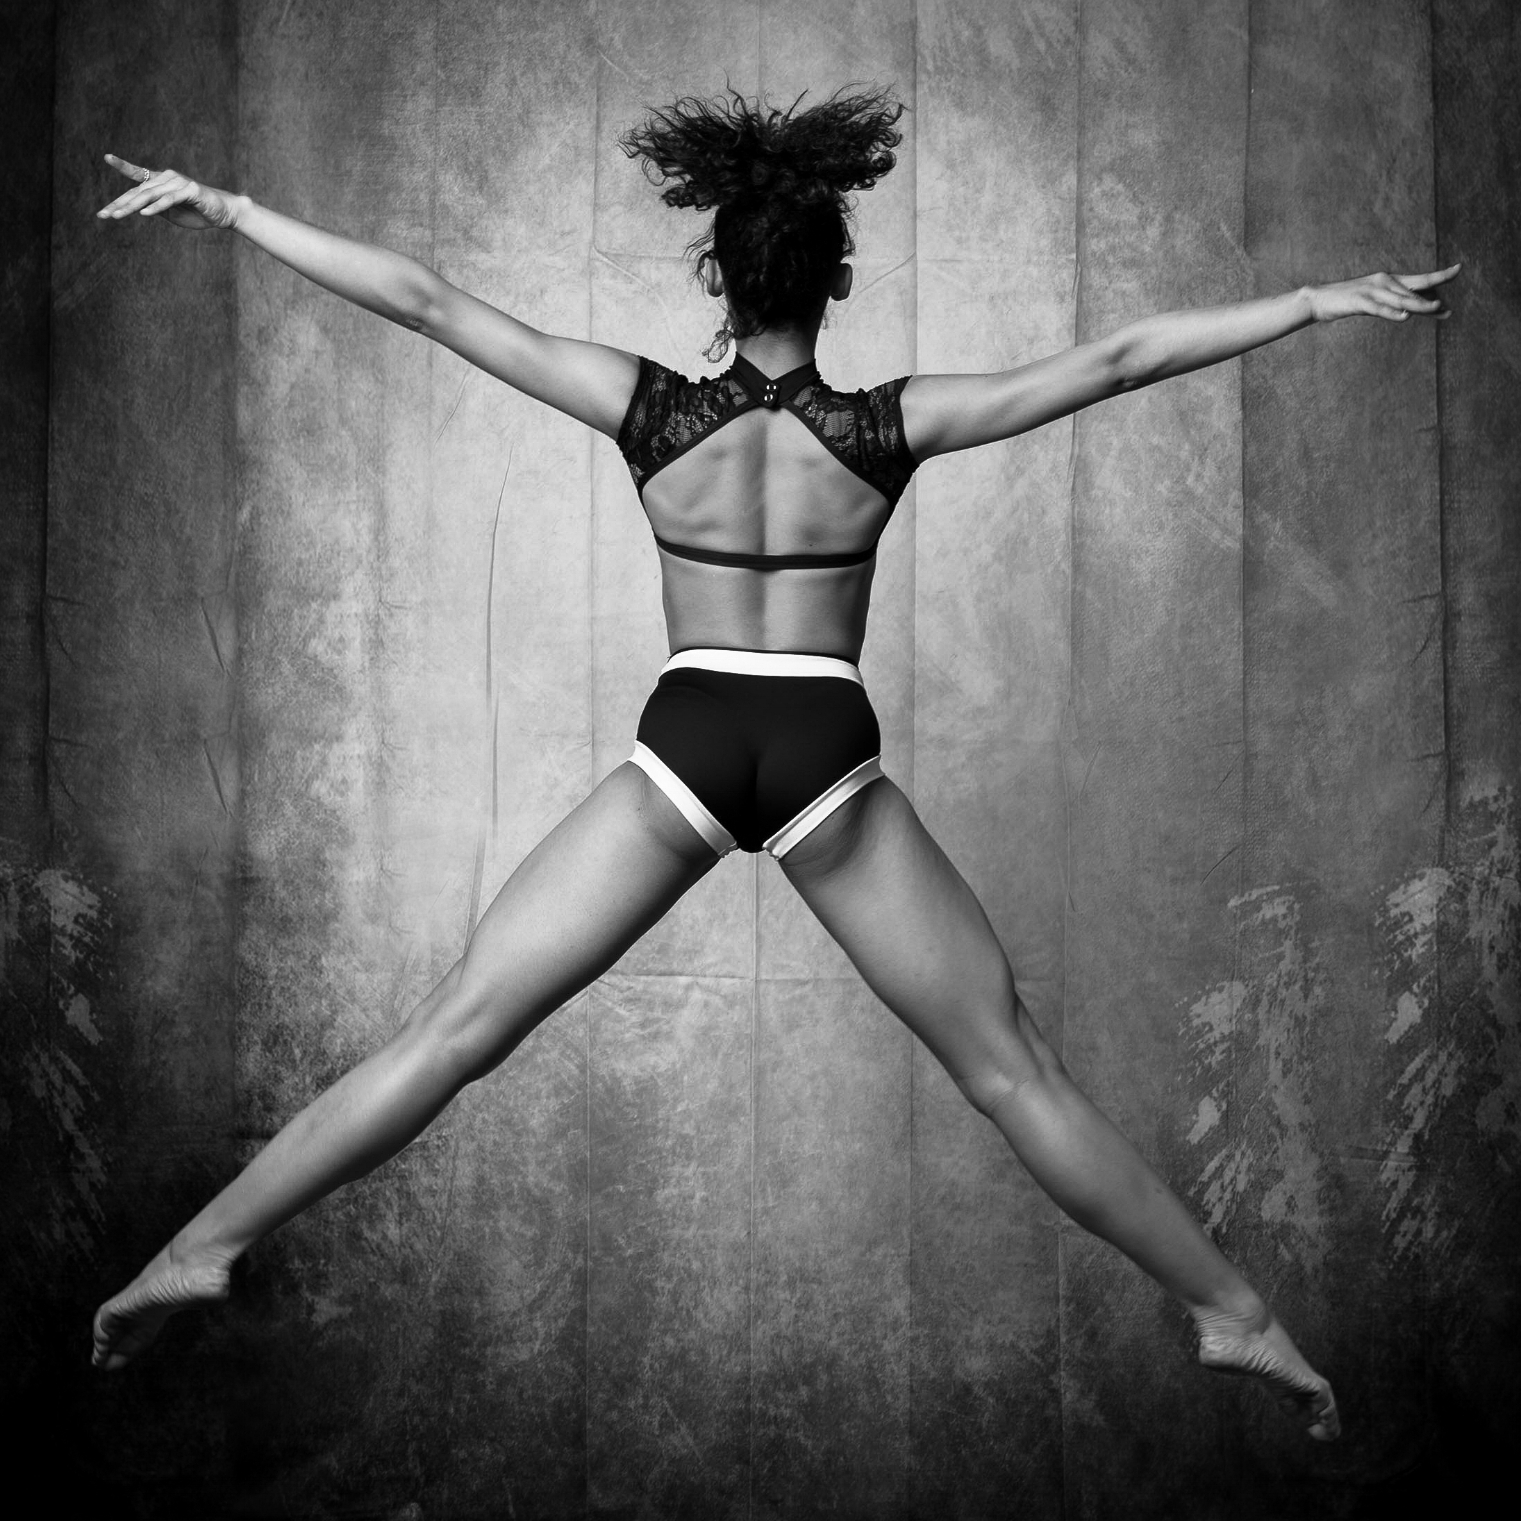 Anatomy & Physiology of Dance - Learn the basic anatomical and physiological systems used by the human body in order to achieve the grace of a dancer.Explore functional movement patterns found in dance that can help your students obtain specific goals.